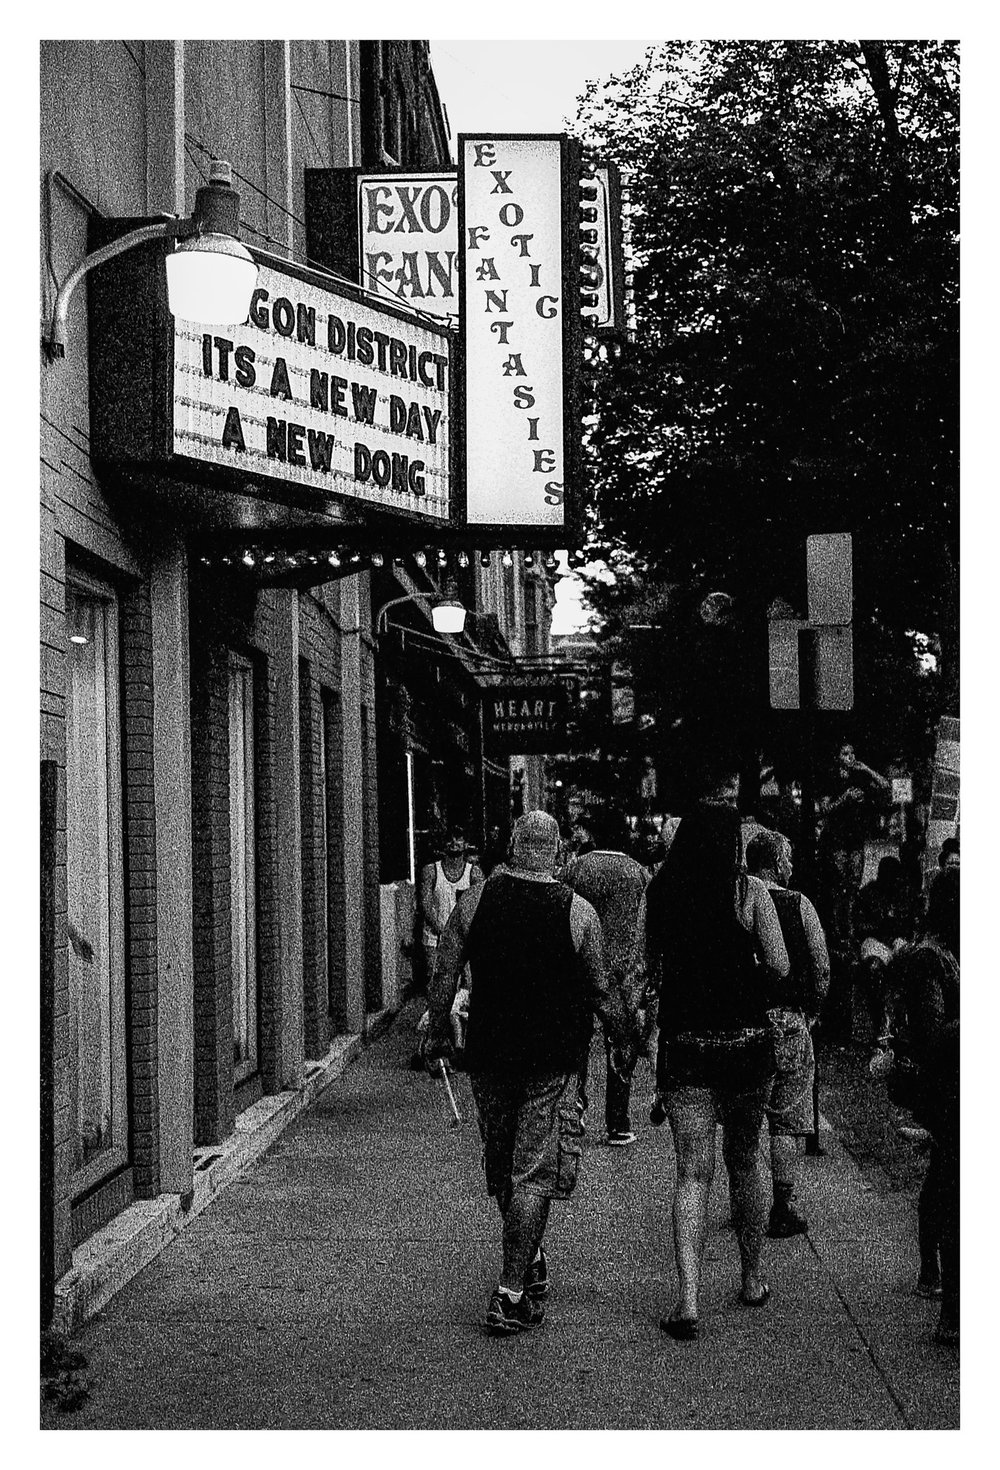 It's a New Day in the Oregon District - Nikon F5 with 50mm f/1.4 lens at f/2.8 in A-Priority mode on Kodak TMAX P3200 film